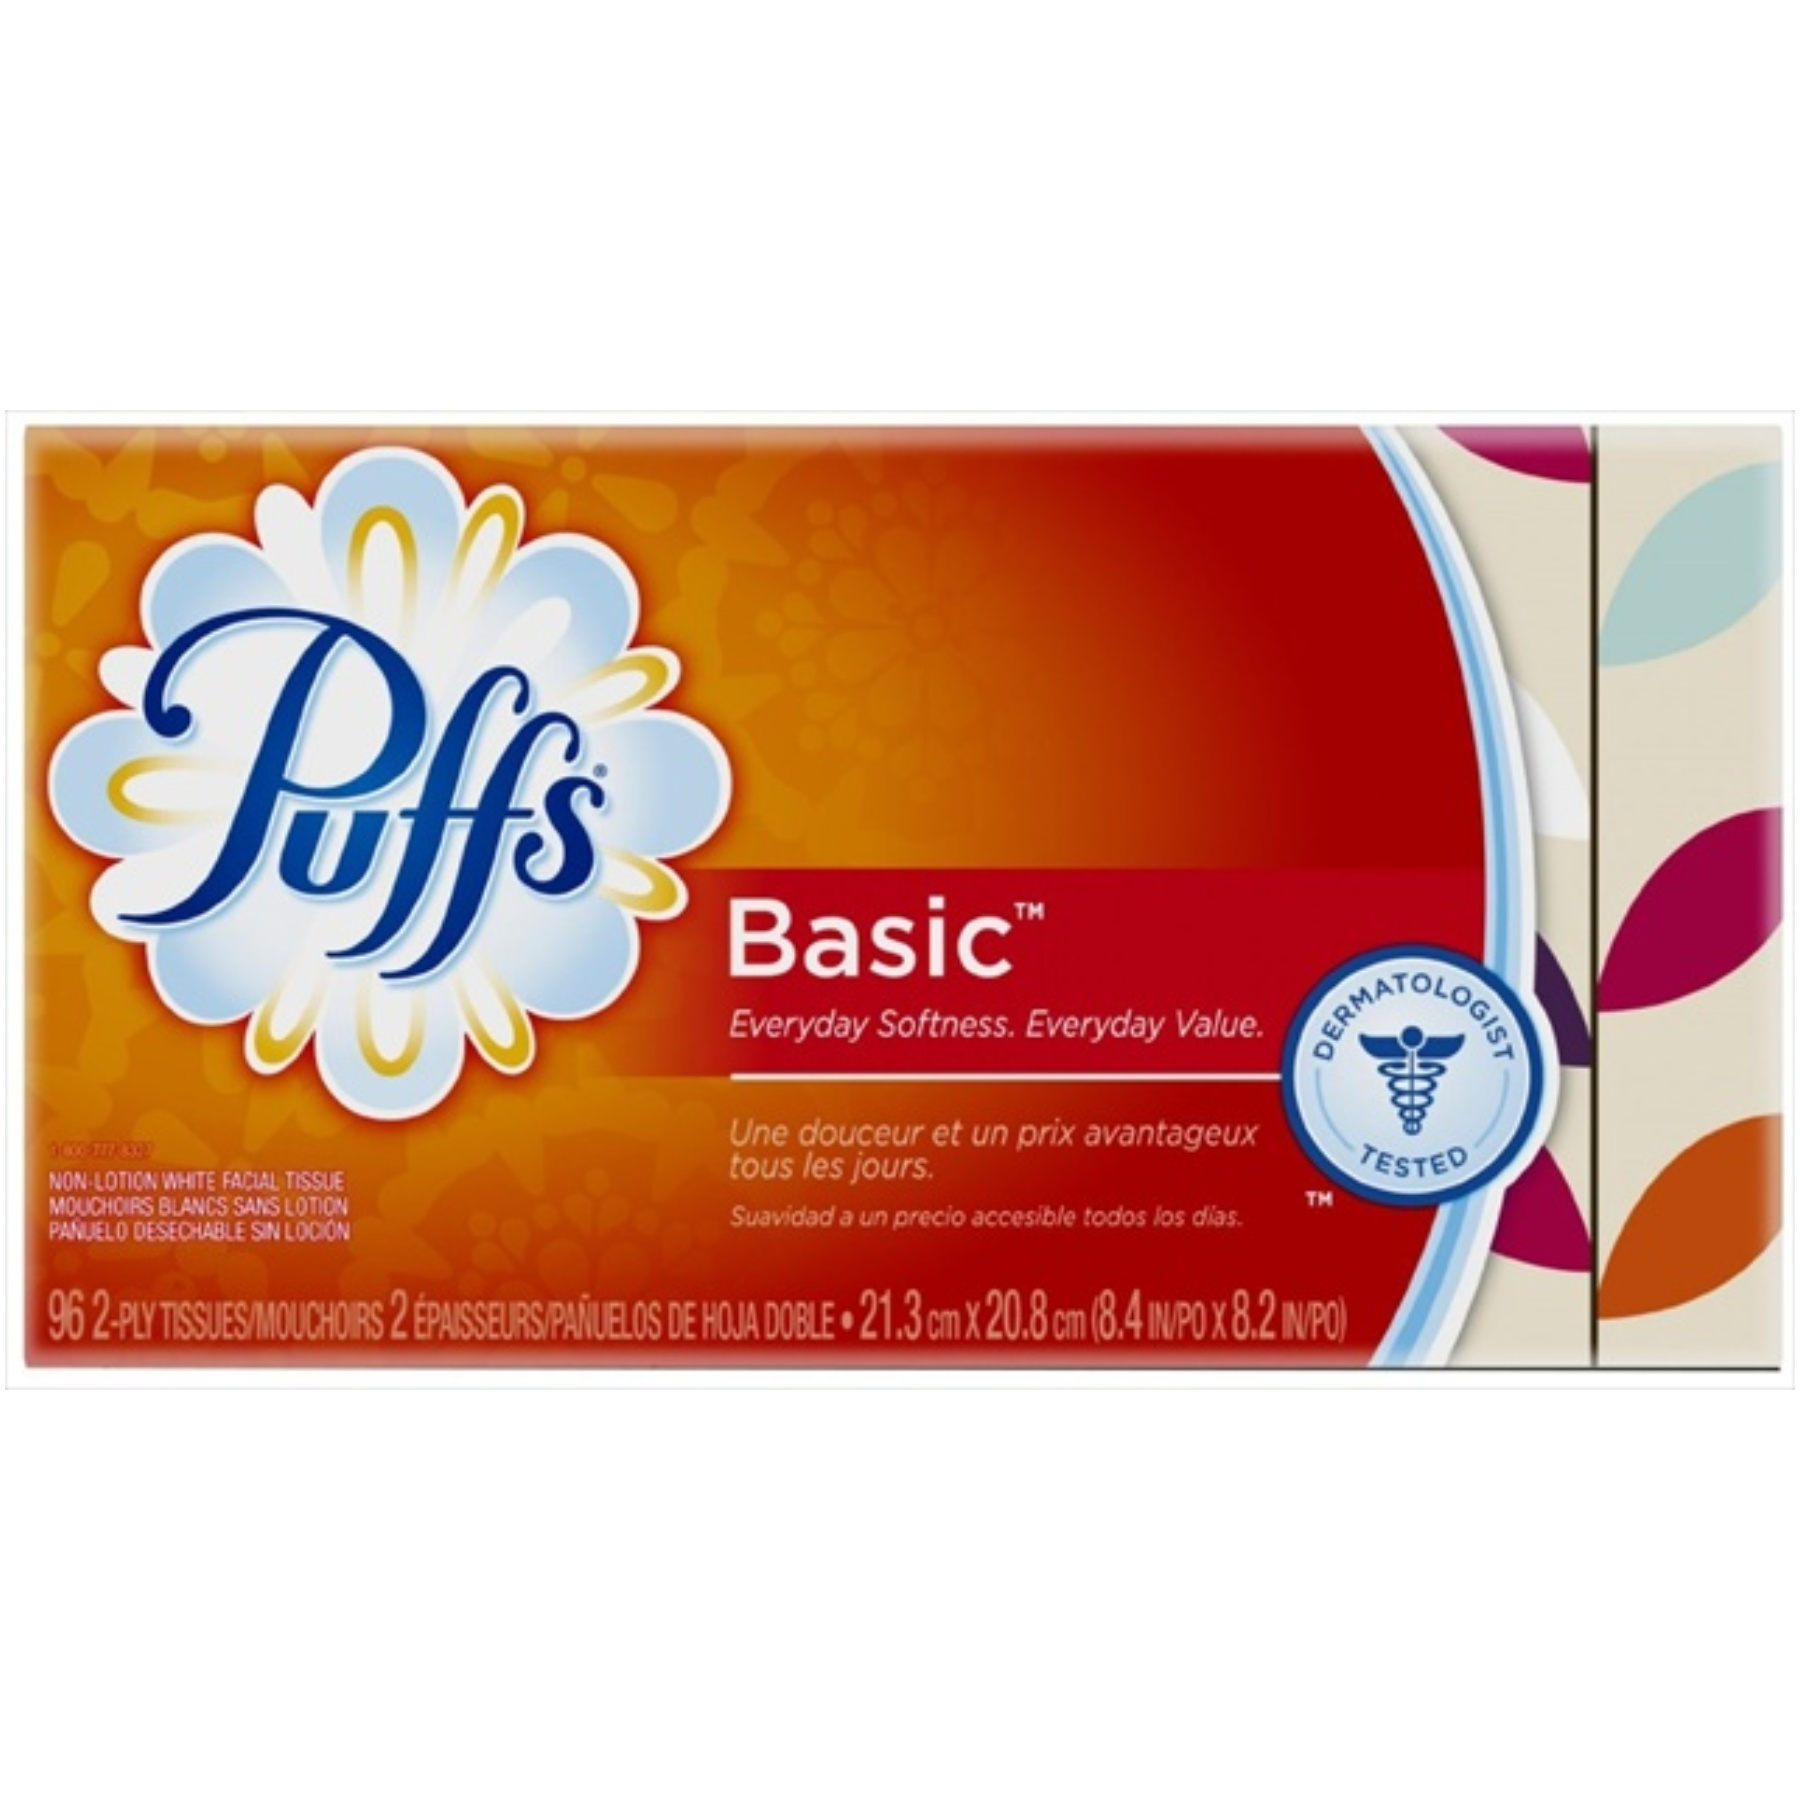 Better Than Free Puffs Tissues At Price Chopper!